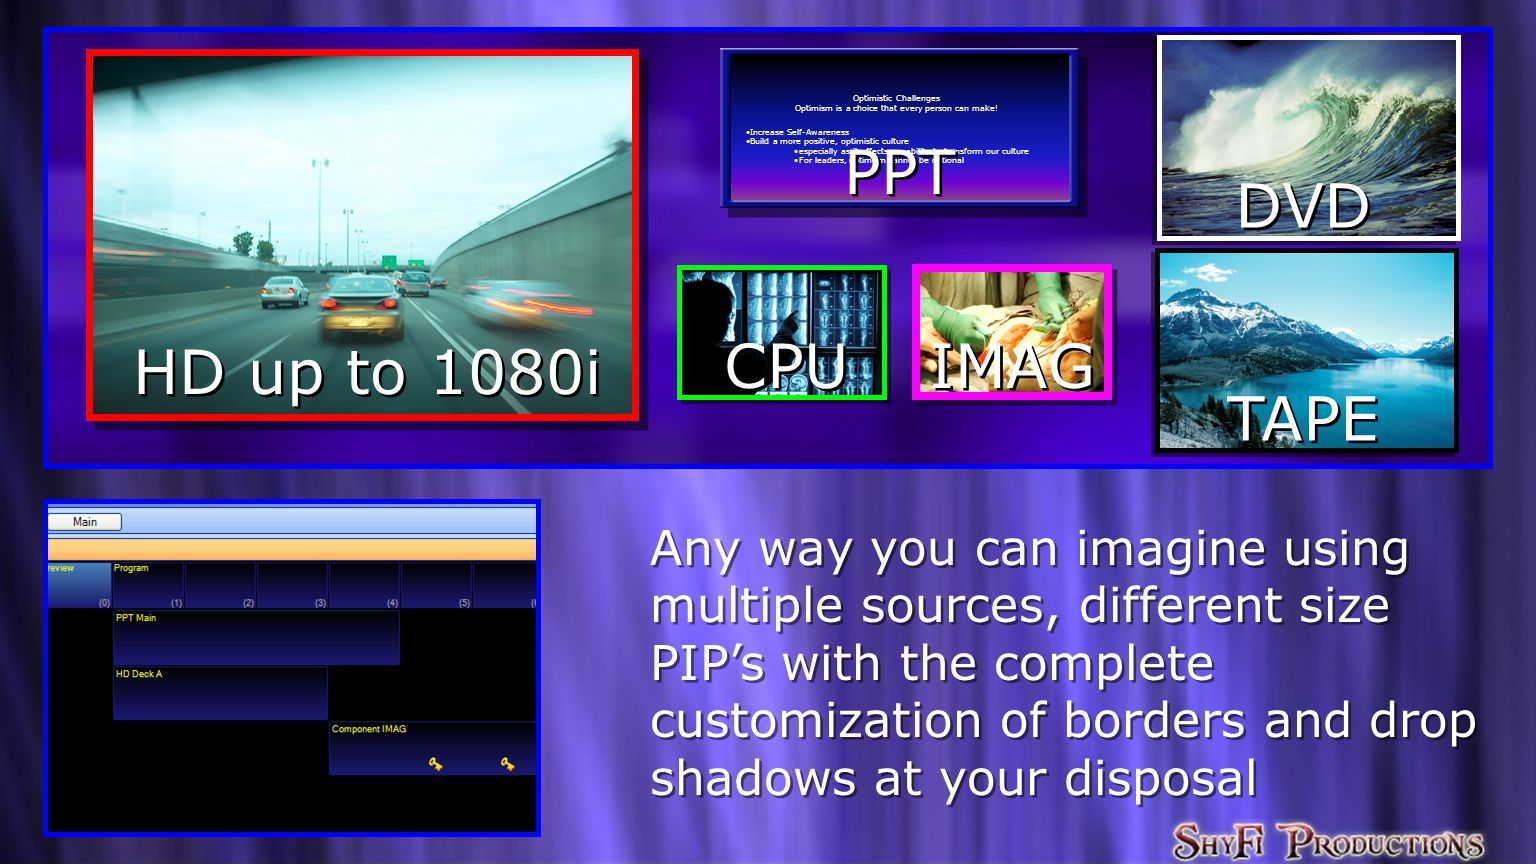 Any way you can imagine using multiple sources, different size PIP's with the complete customization of borders and drop shadows at your disposal Any way you can imagine using multiple sources, different size PIP's with the complete customization of borders and drop shadows at your disposal HD up to 1080i DVD TAPE Optimistic Challenges Optimism is a choice that every person can make.